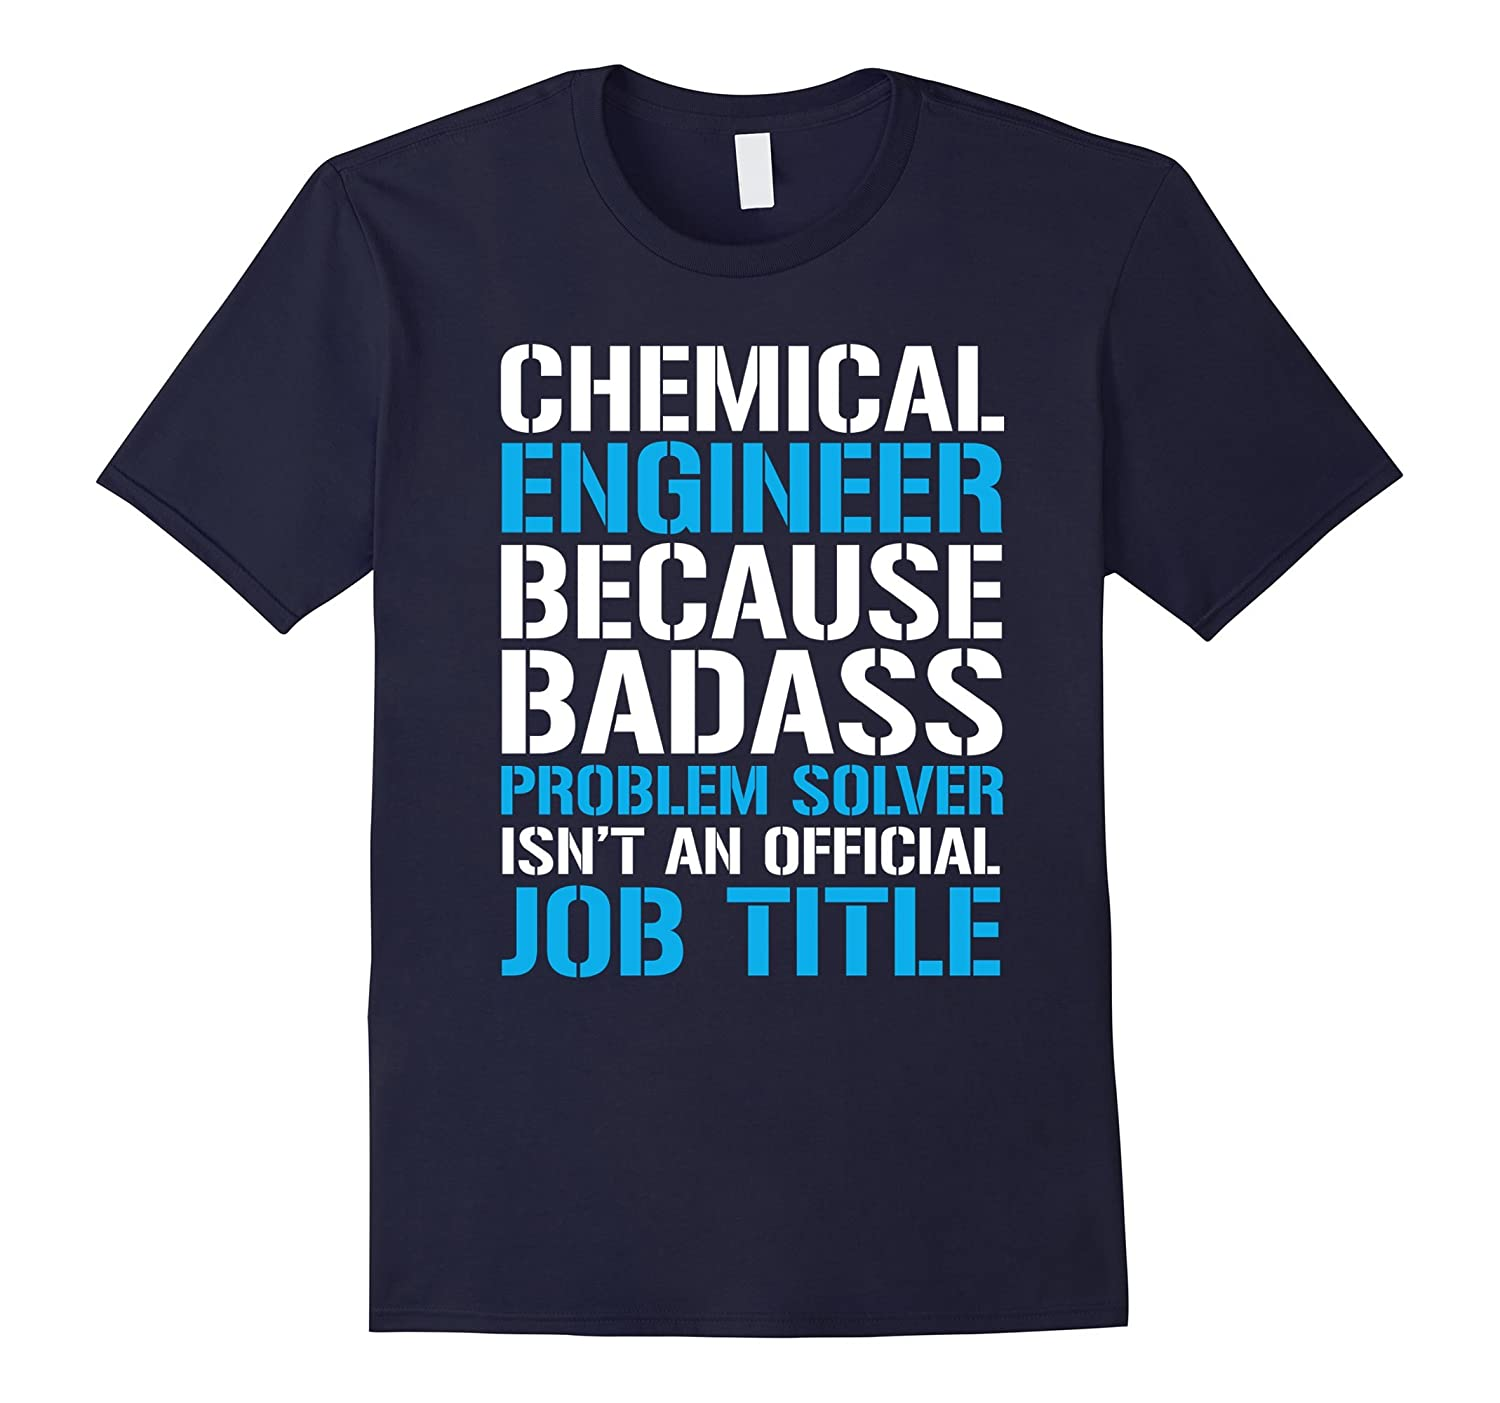 com chemical engineer because badass problem solver tshirt com chemical engineer because badass problem solver tshirt clothing